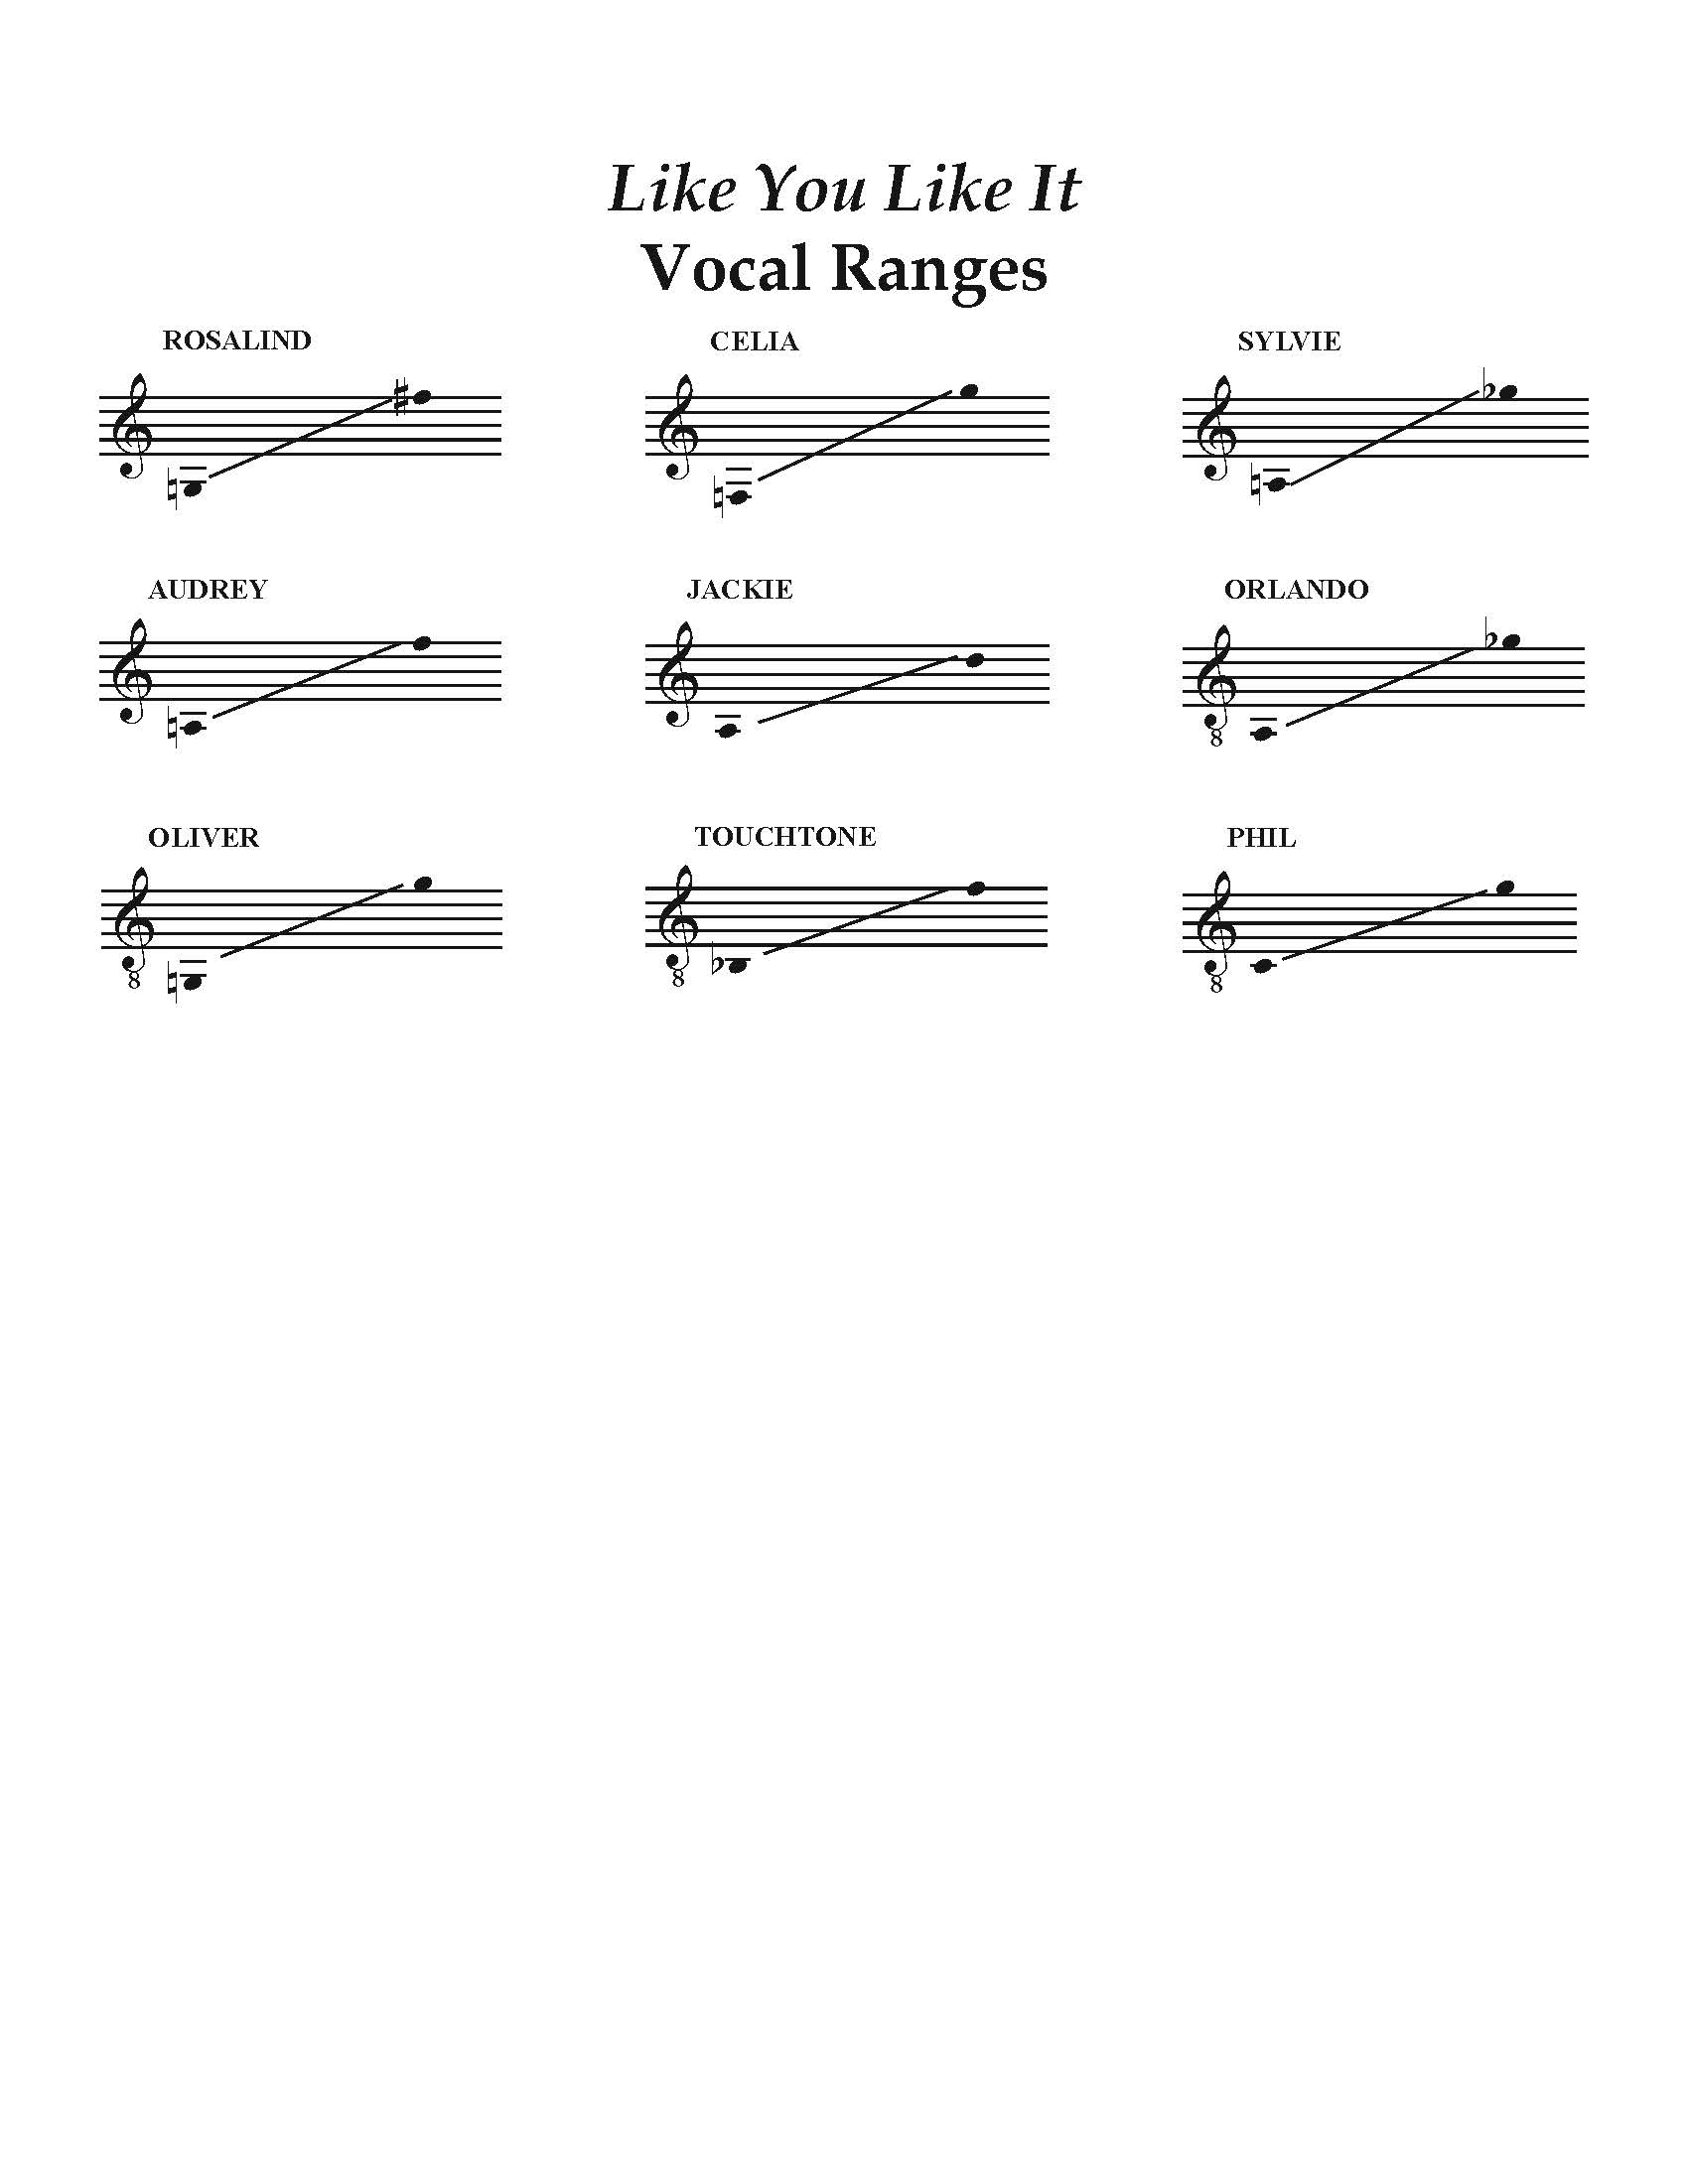 Like You Like It Vocal Ranges